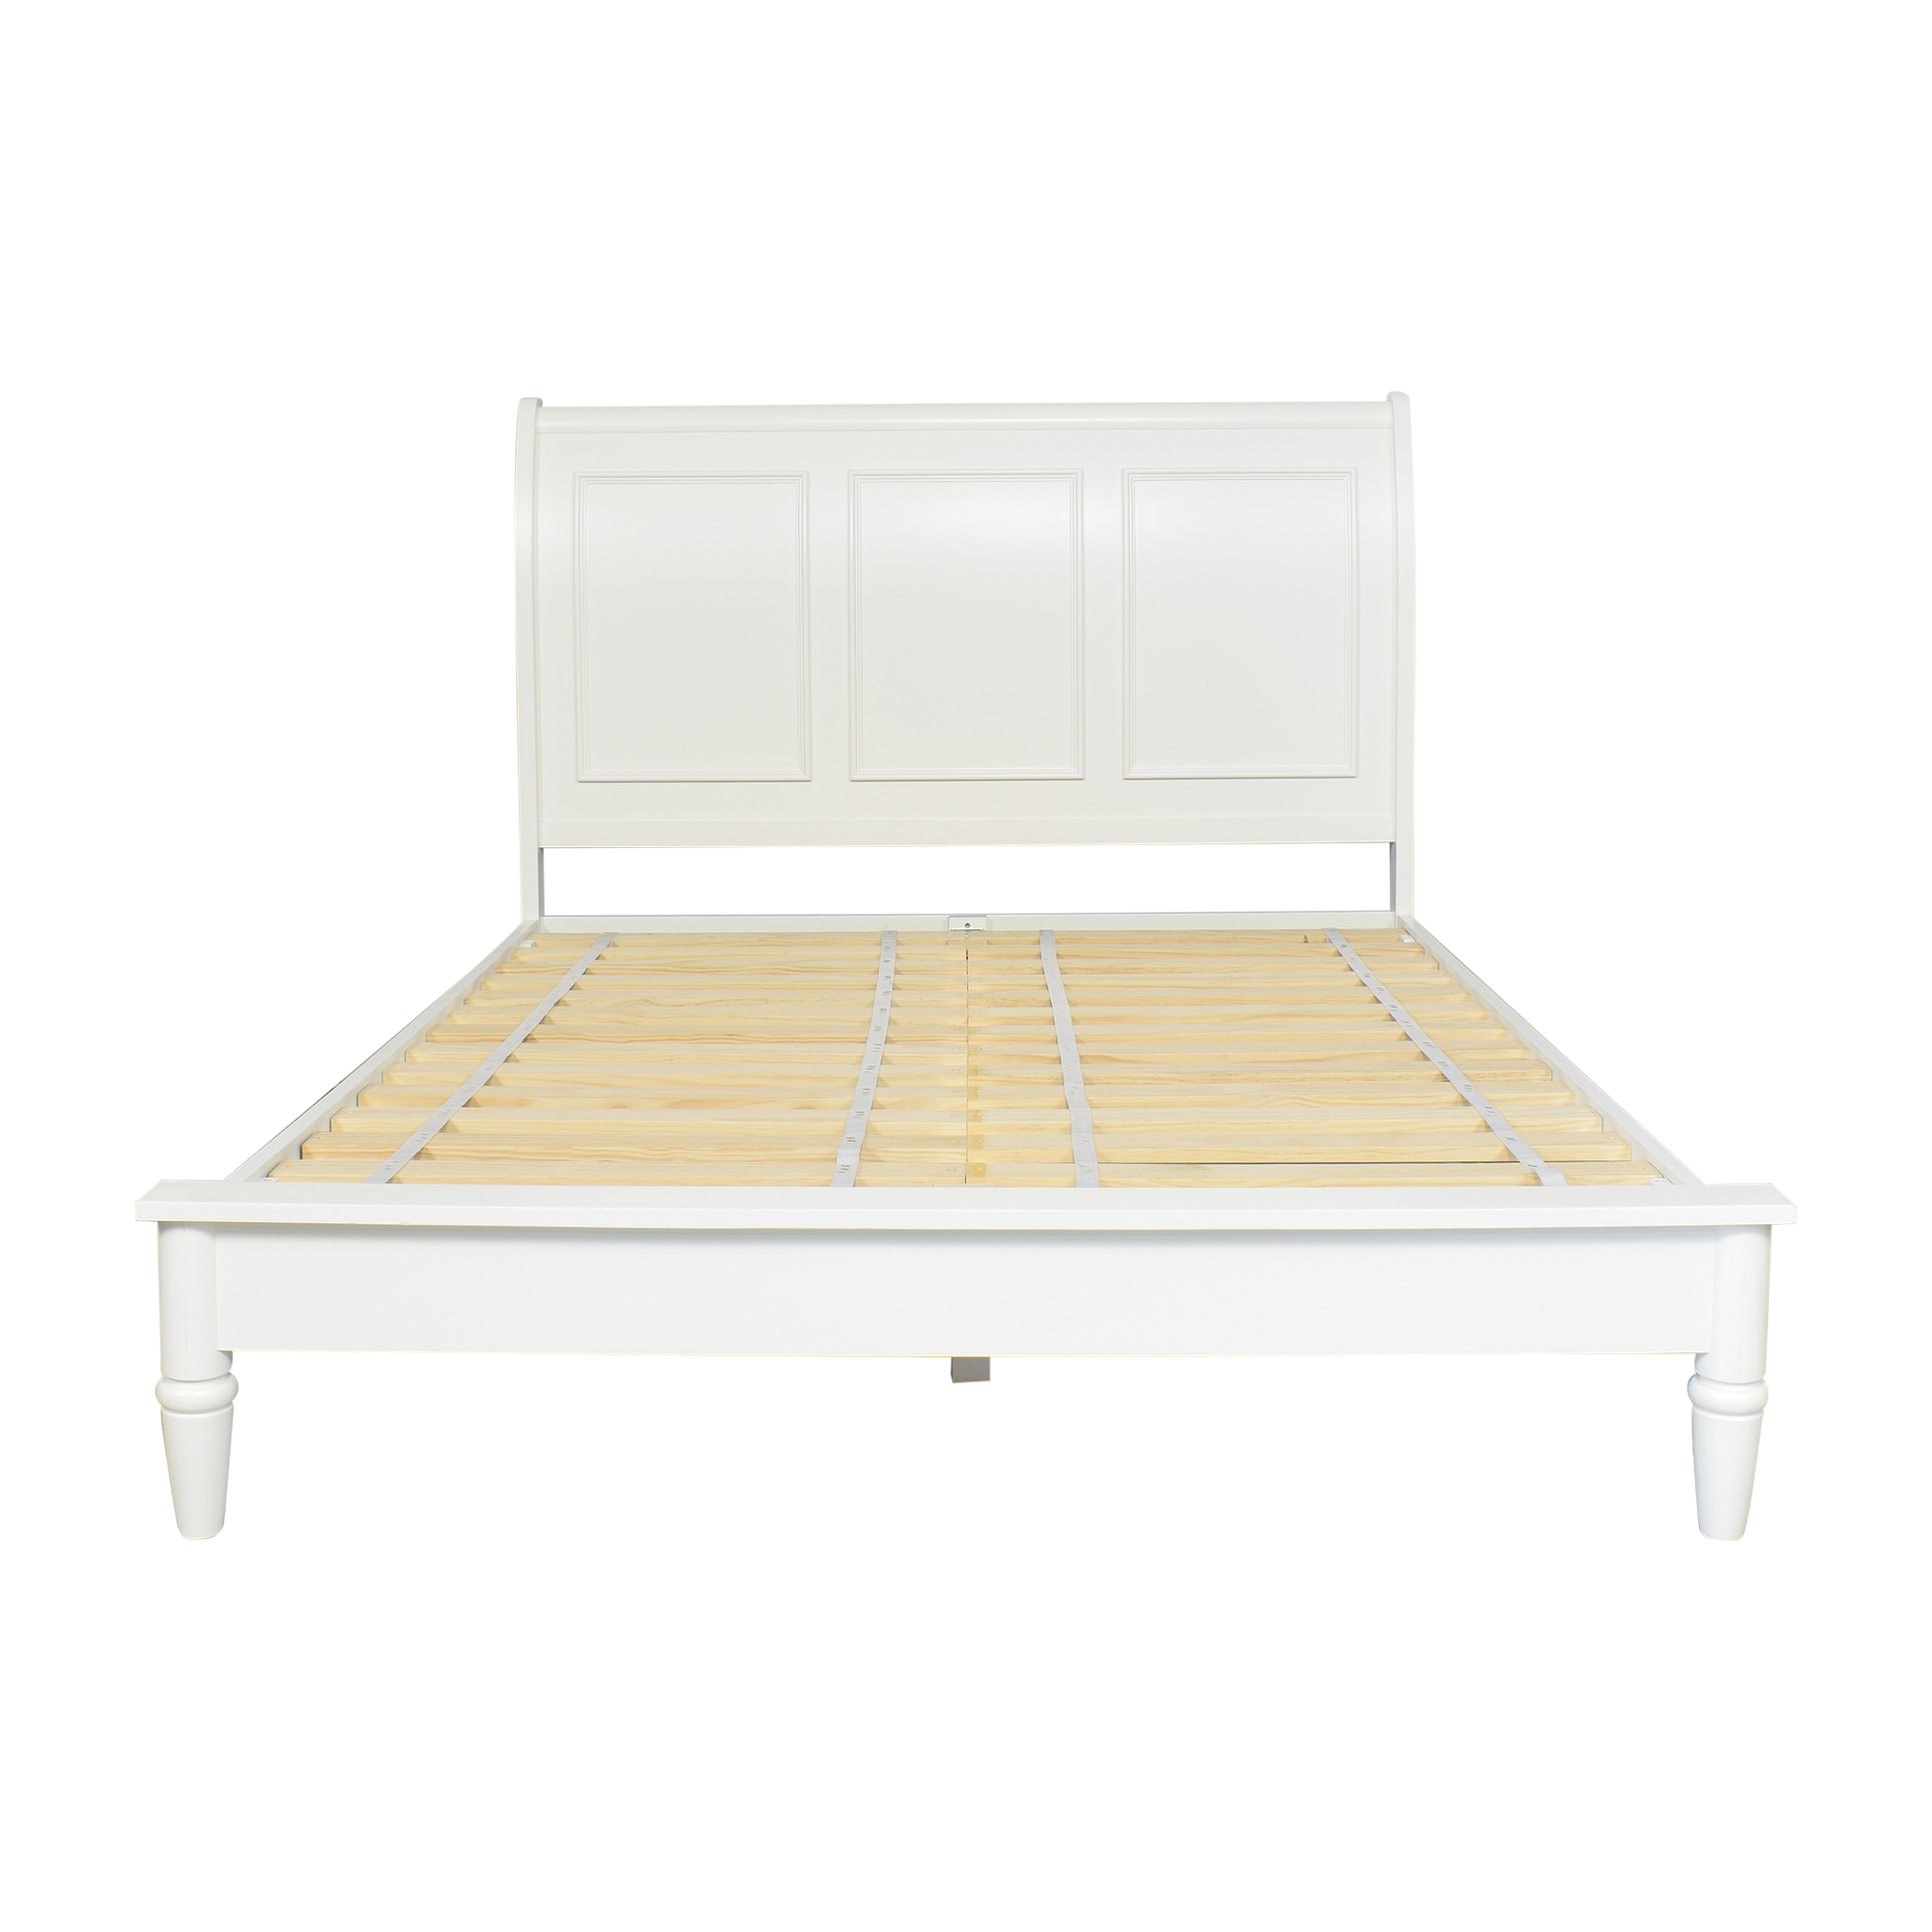 Pottery Barn Pottery Barn Crosby Queen Bed dimensions